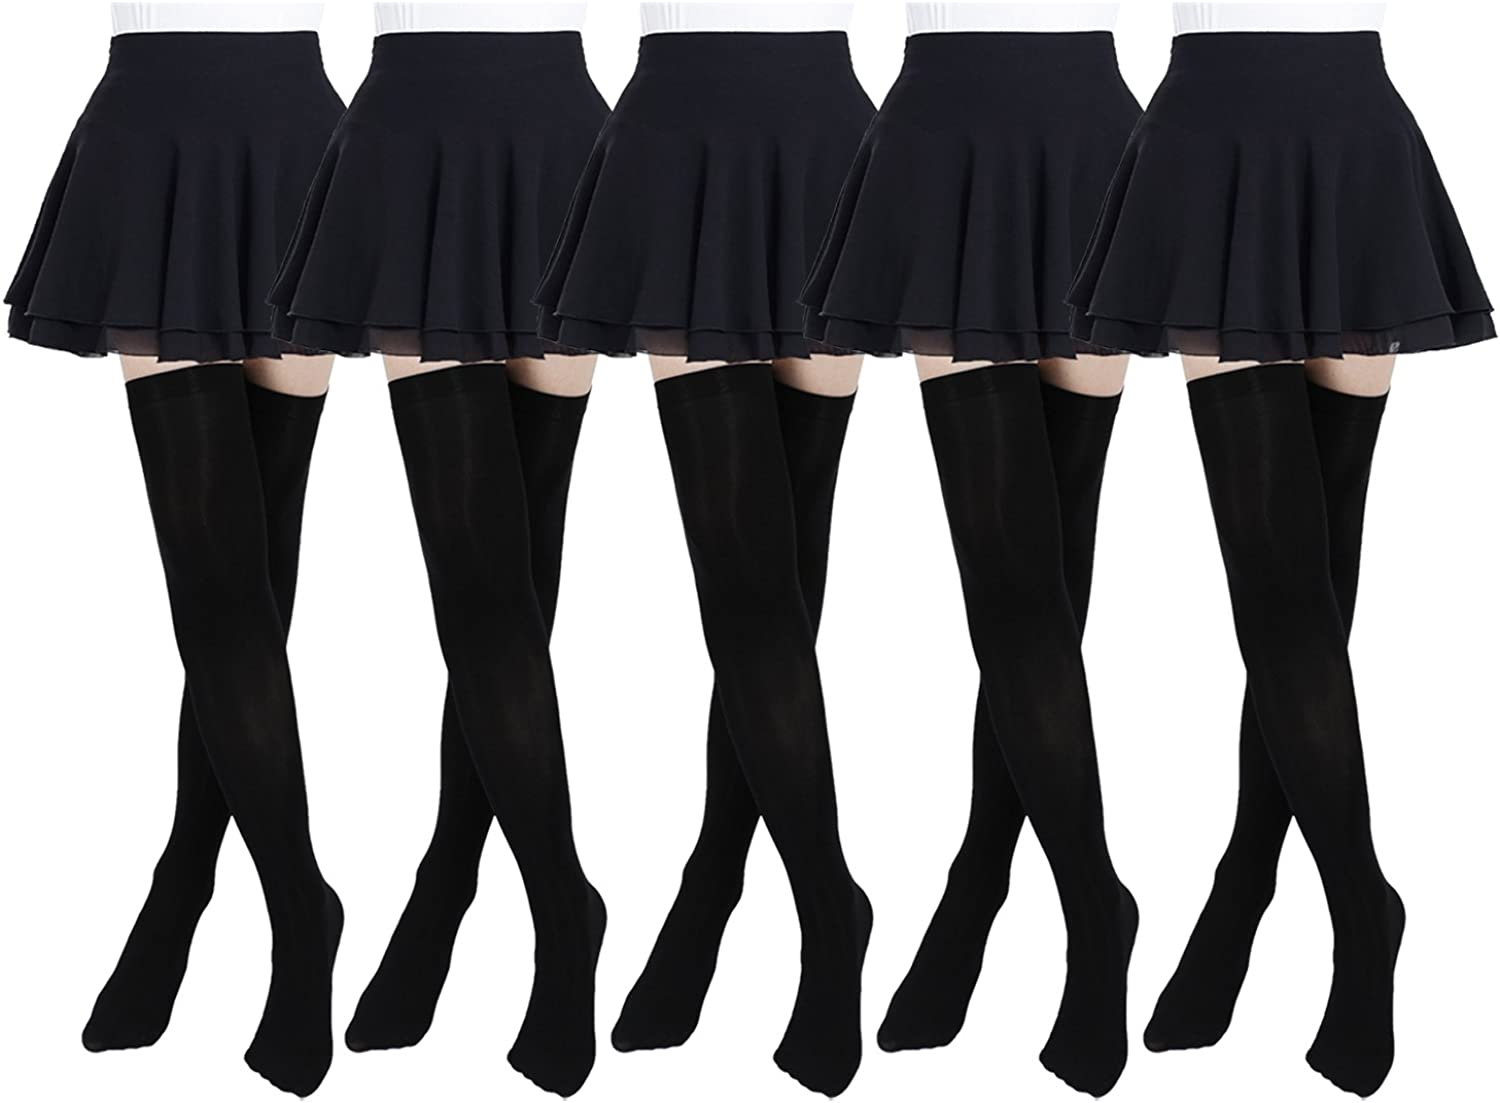 Women/'s Fashion Opaque Solid Color Thigh High Stockings Over The Knee Socks Con